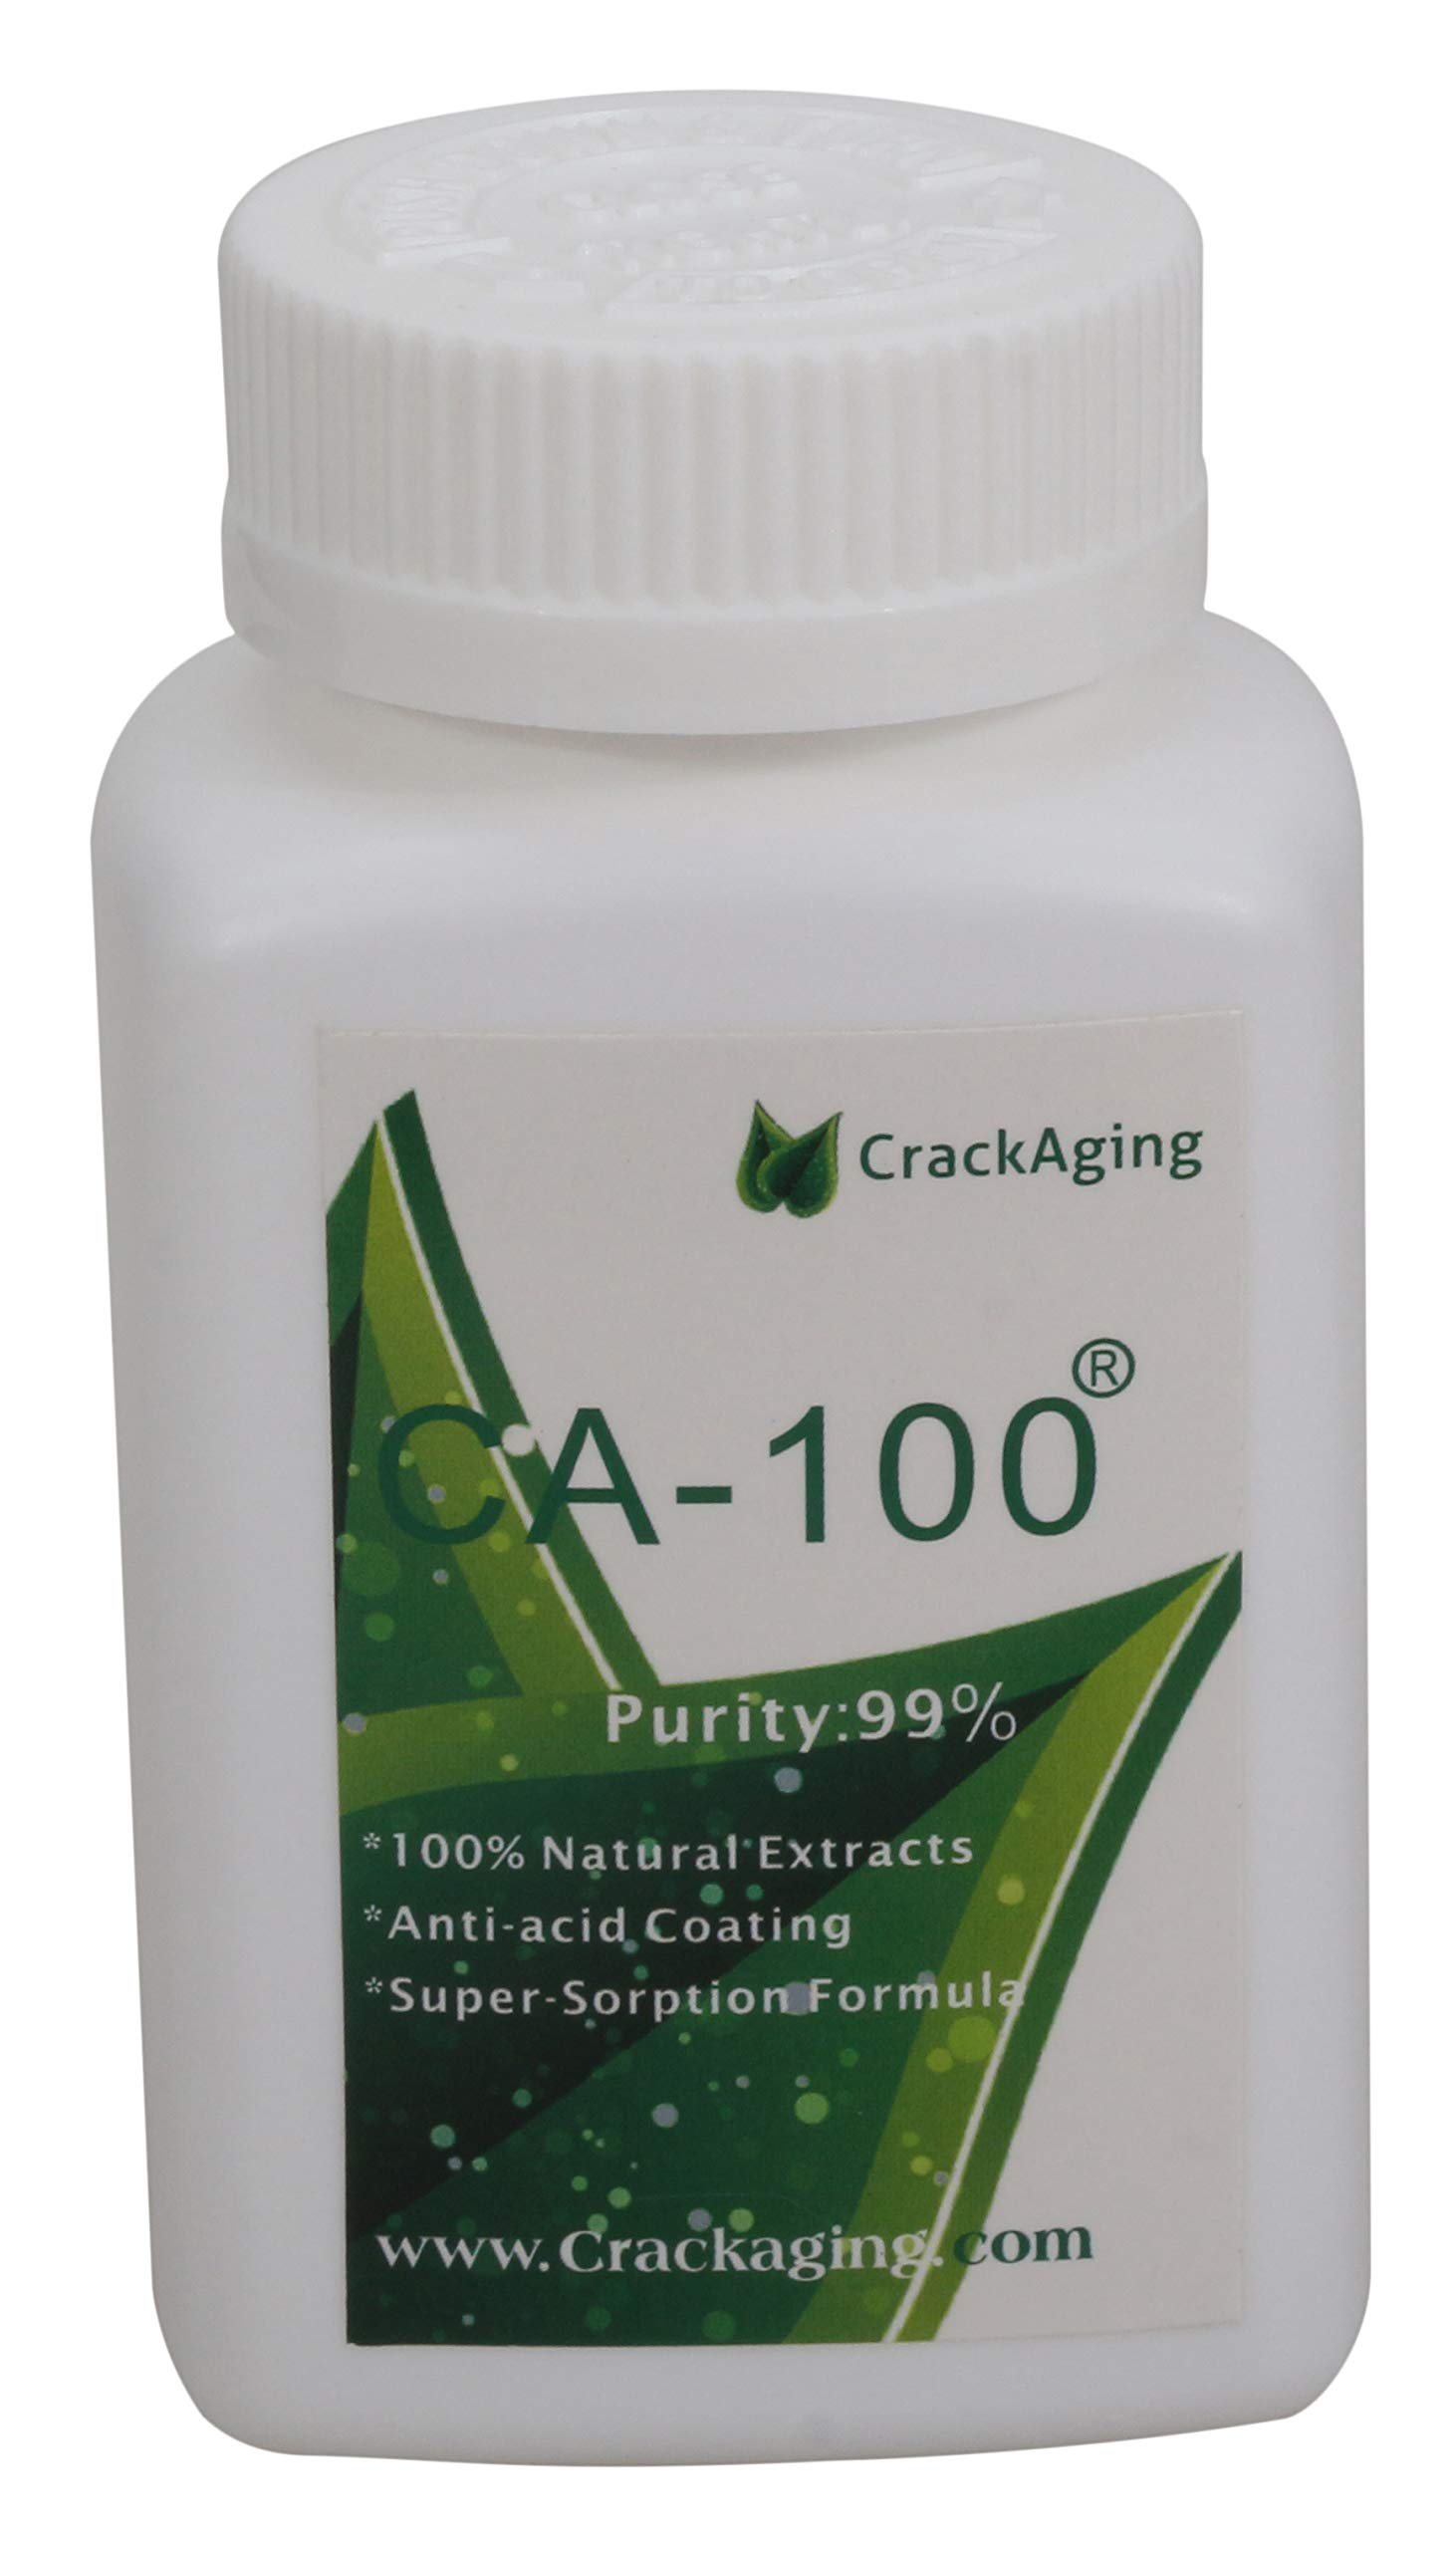 CrackAging CA-100® - 100% Natural Super-Absorption Cycloastragenol (25mg/cap 30 caps/bottle)